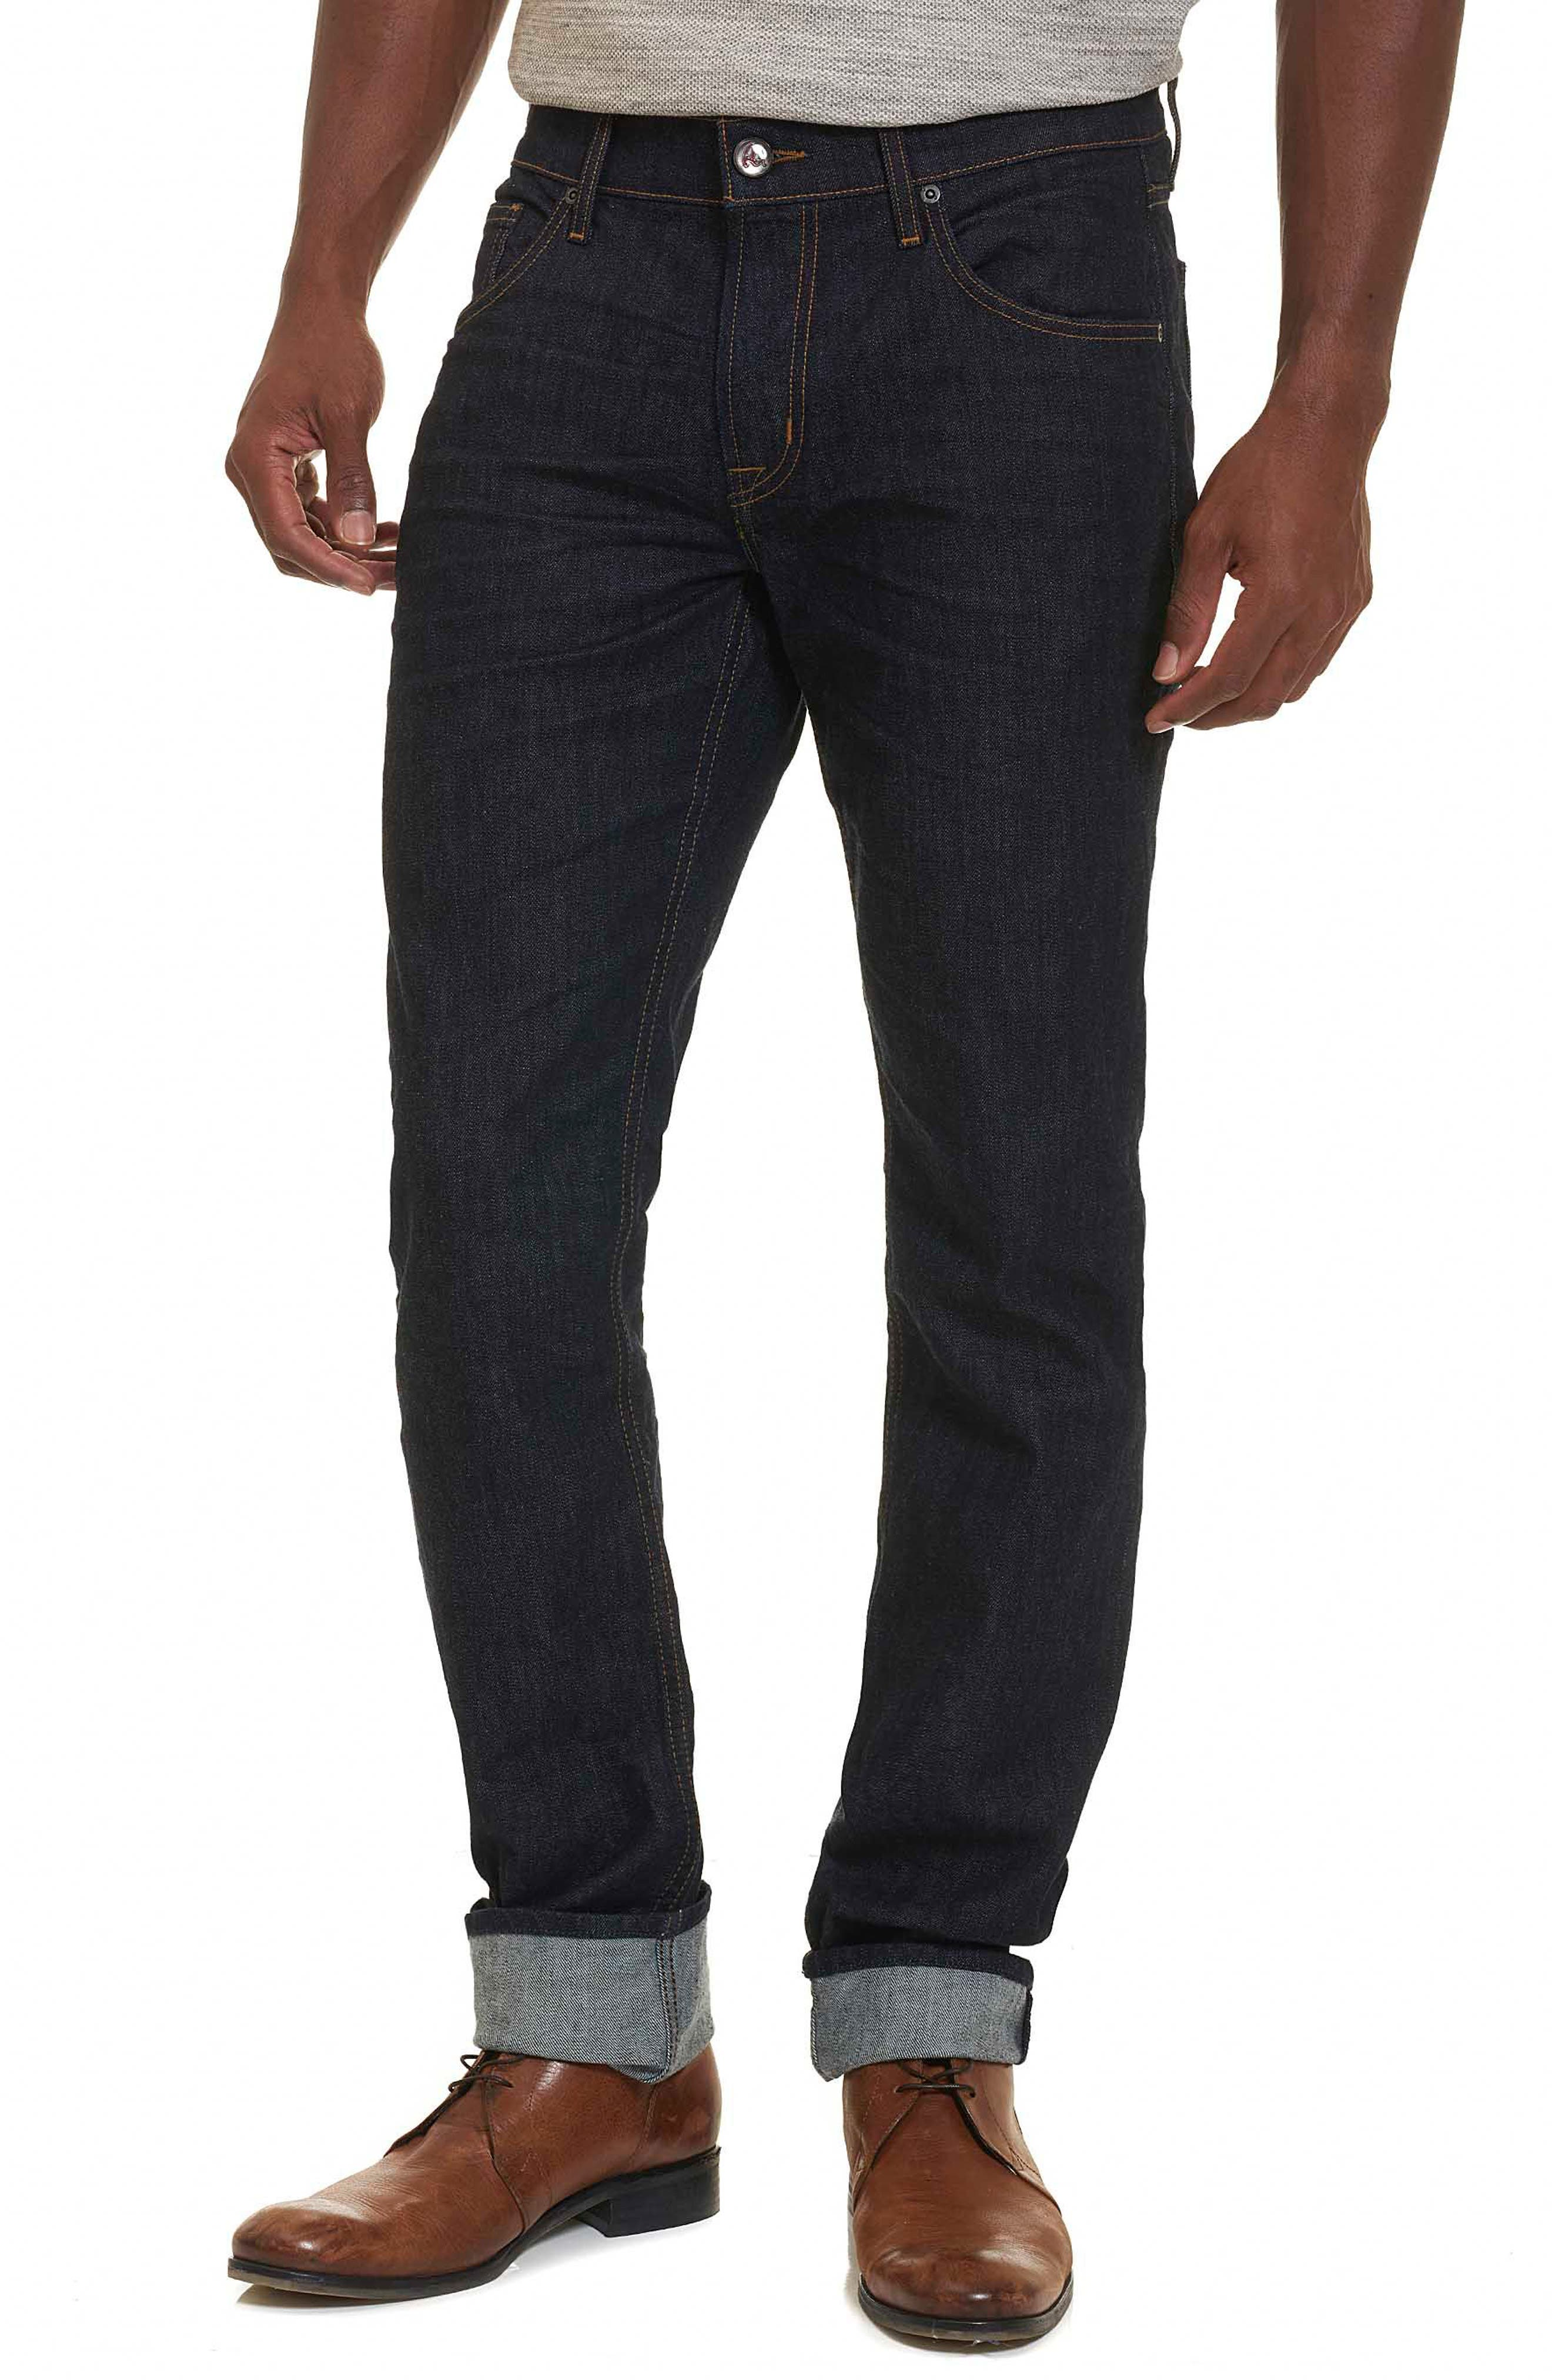 Robert Graham Resist Tailored Fit Jeans (Indigo)